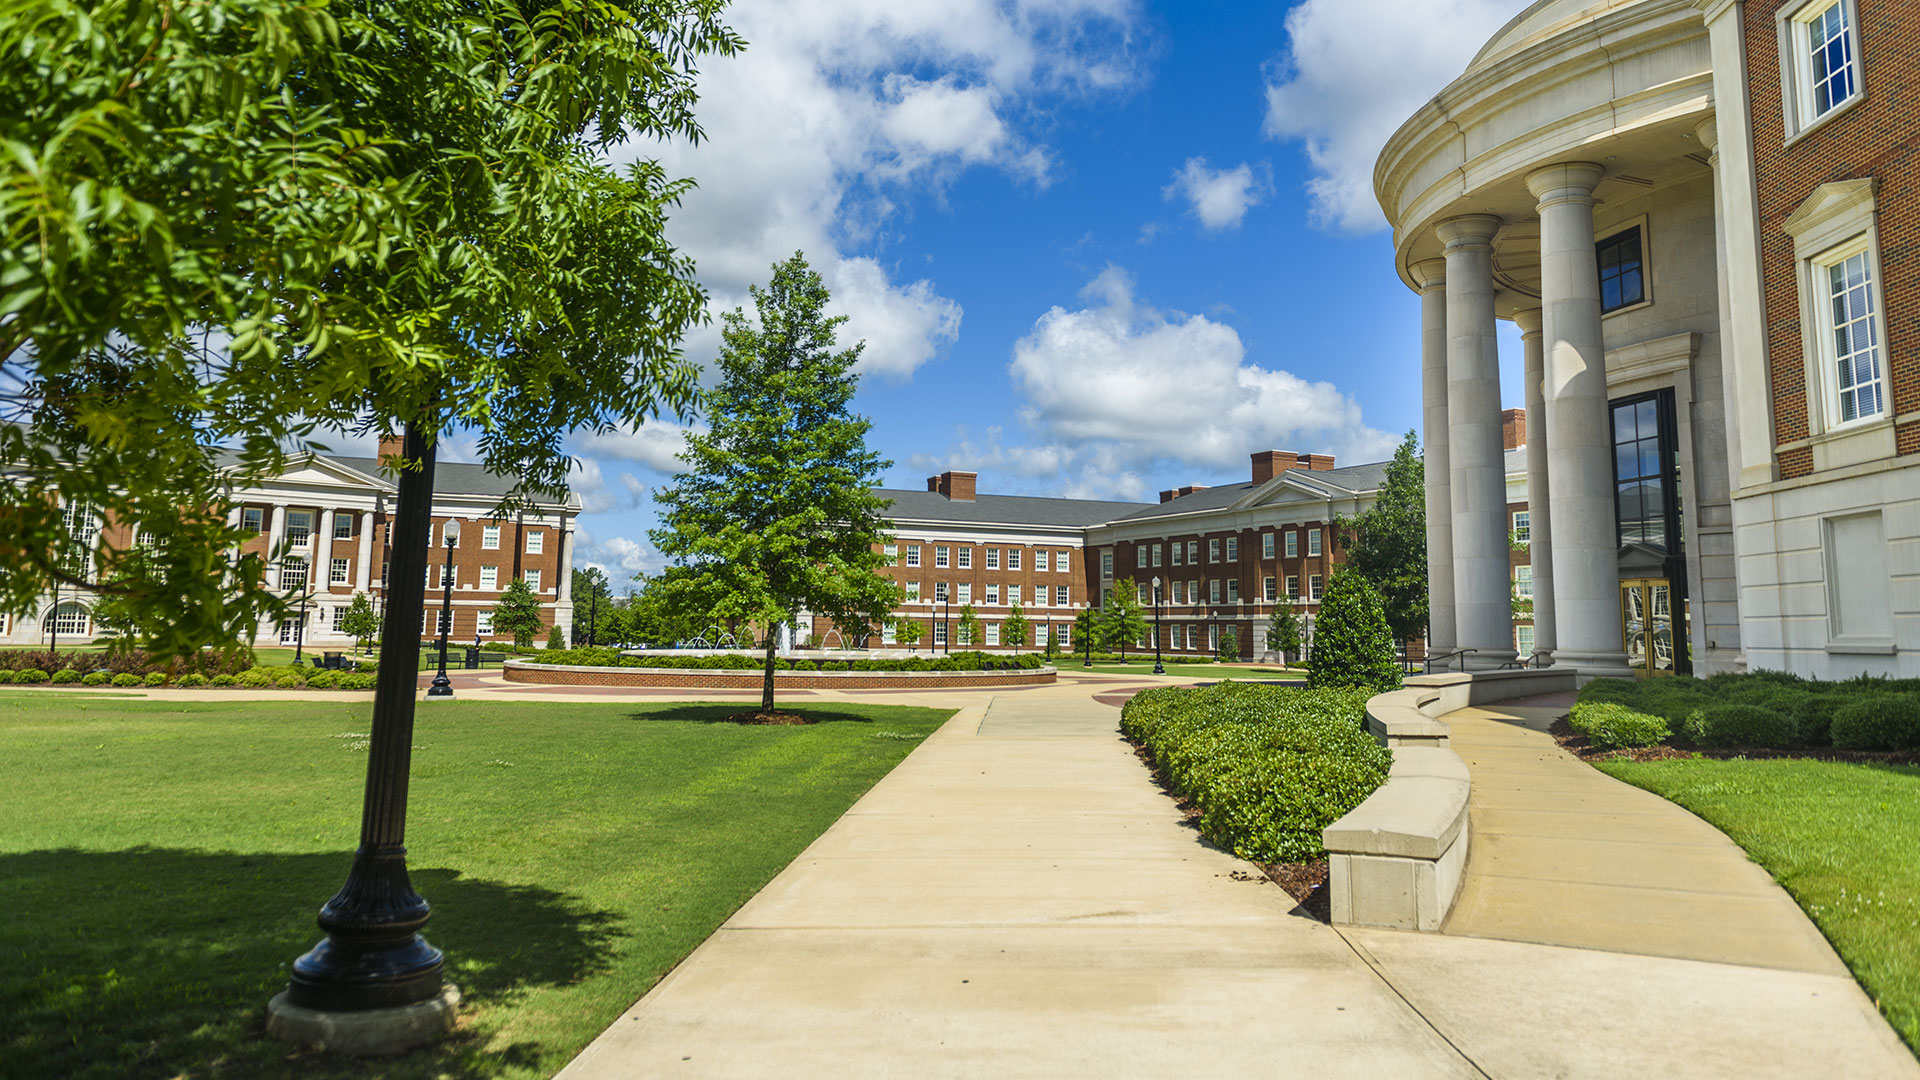 A view of the Science and Engineering Quad.